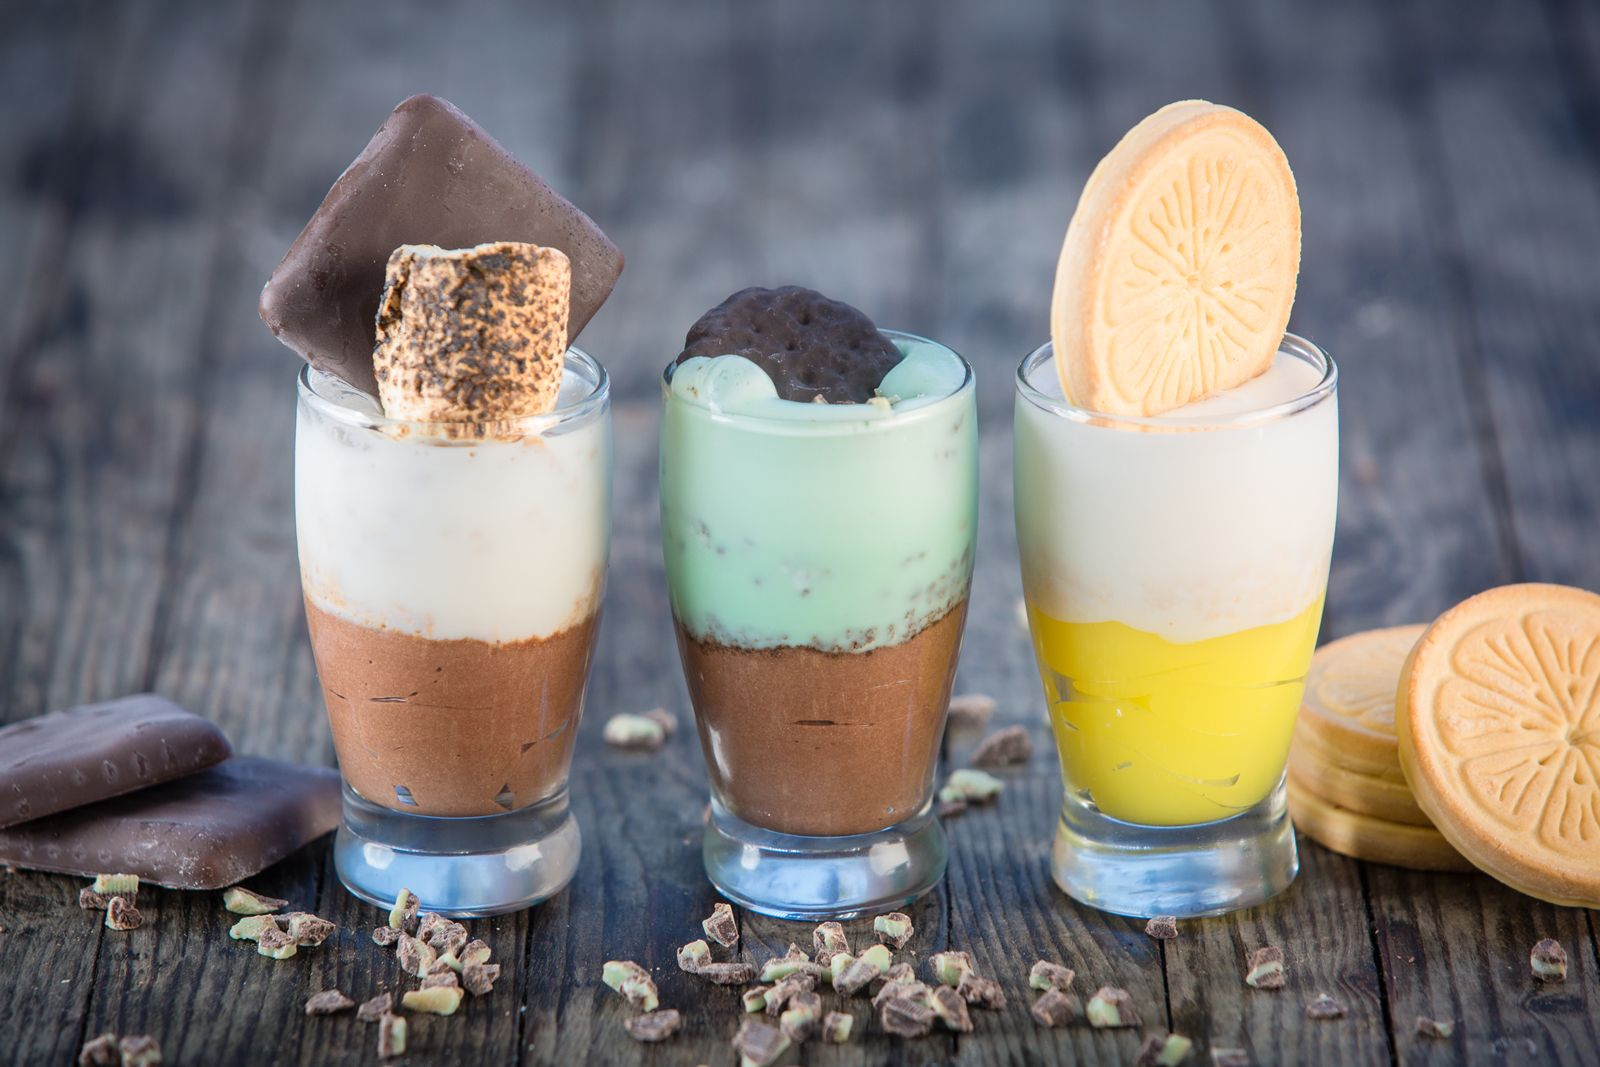 Slater's 50/50 Girl Scout Cookies Dessert trio